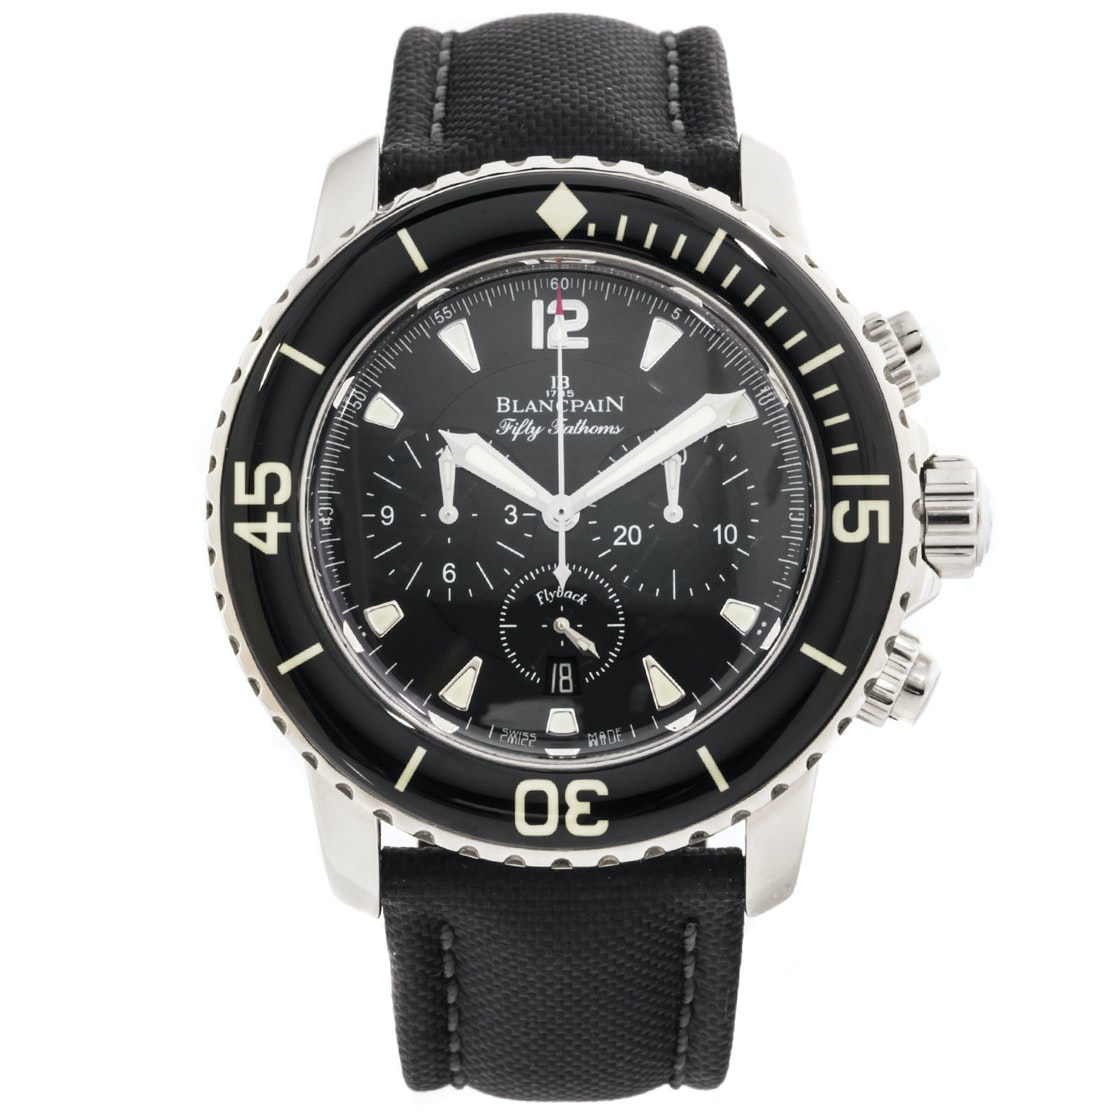 Blancpain Fifty Fathoms Flyback Chronograph 5085F-1130-52